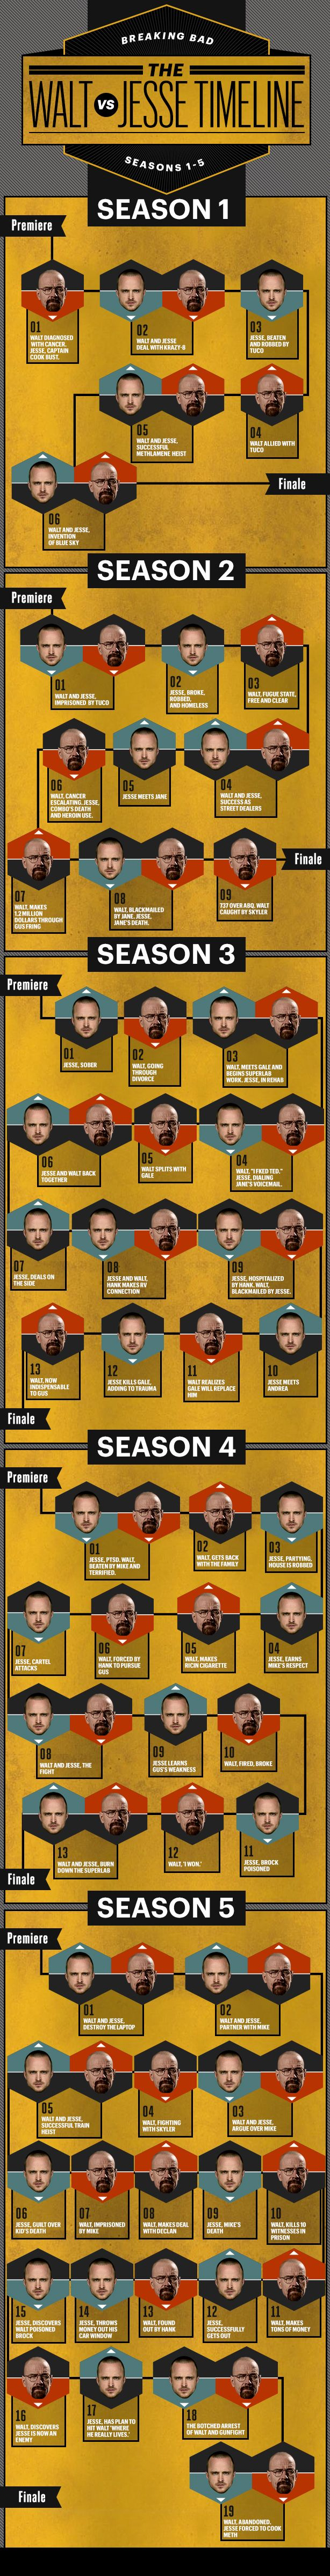 A visual guide to Walt and Jesse's relationship in Breaking Bad